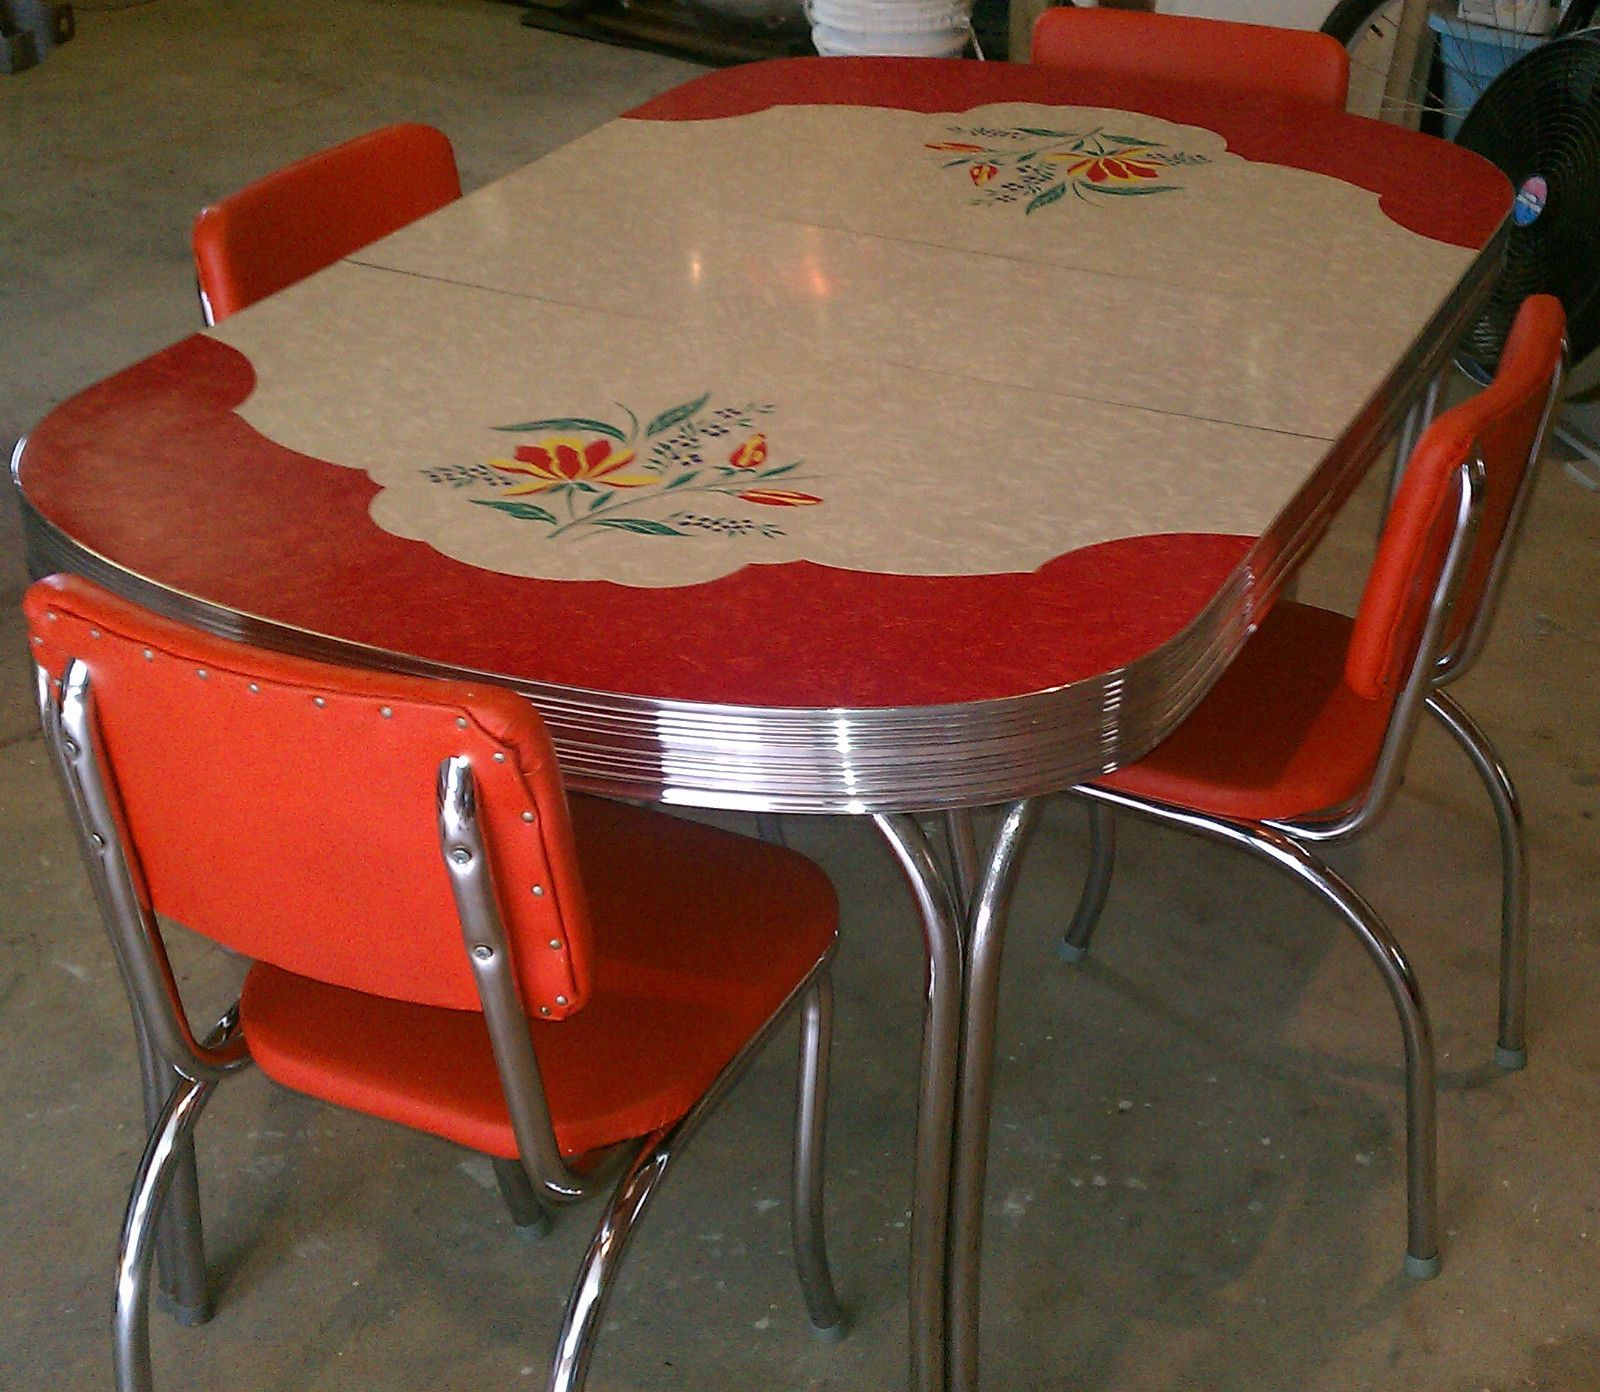 Vintage kitchen formica table 4 chairs chrome orange red for Kitchen table with 4 chairs